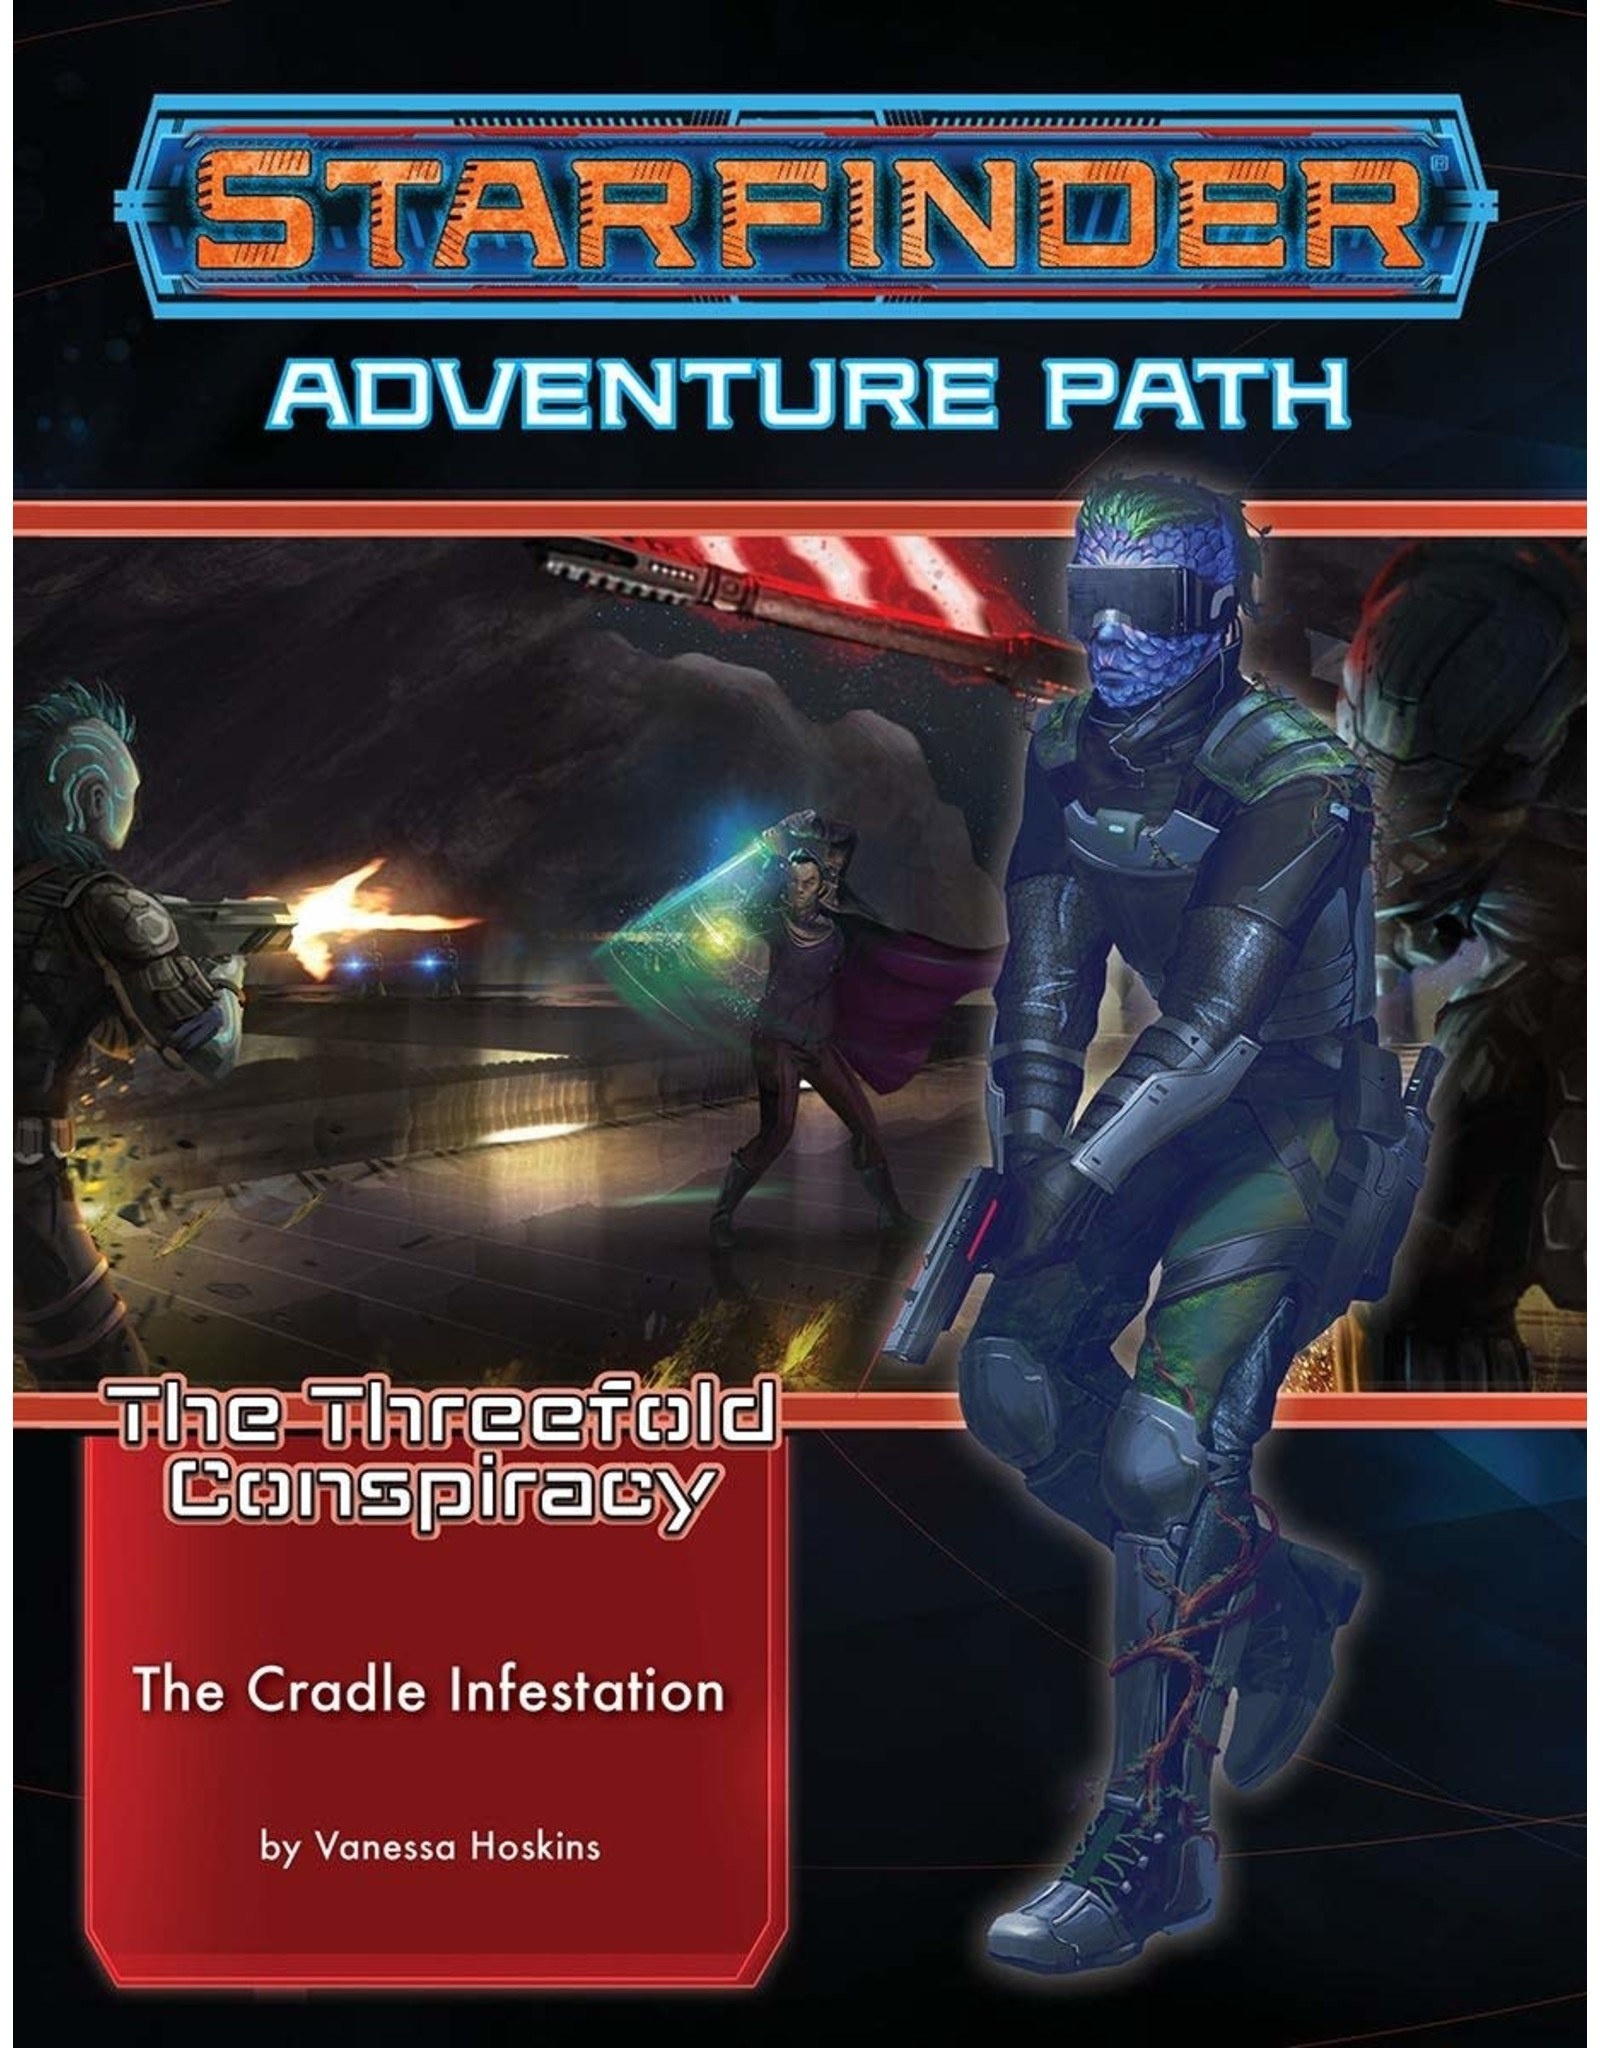 Starfinder RPG: Adventure Path - The Threefold Conspiracy Part 3 - Deceivers Moon